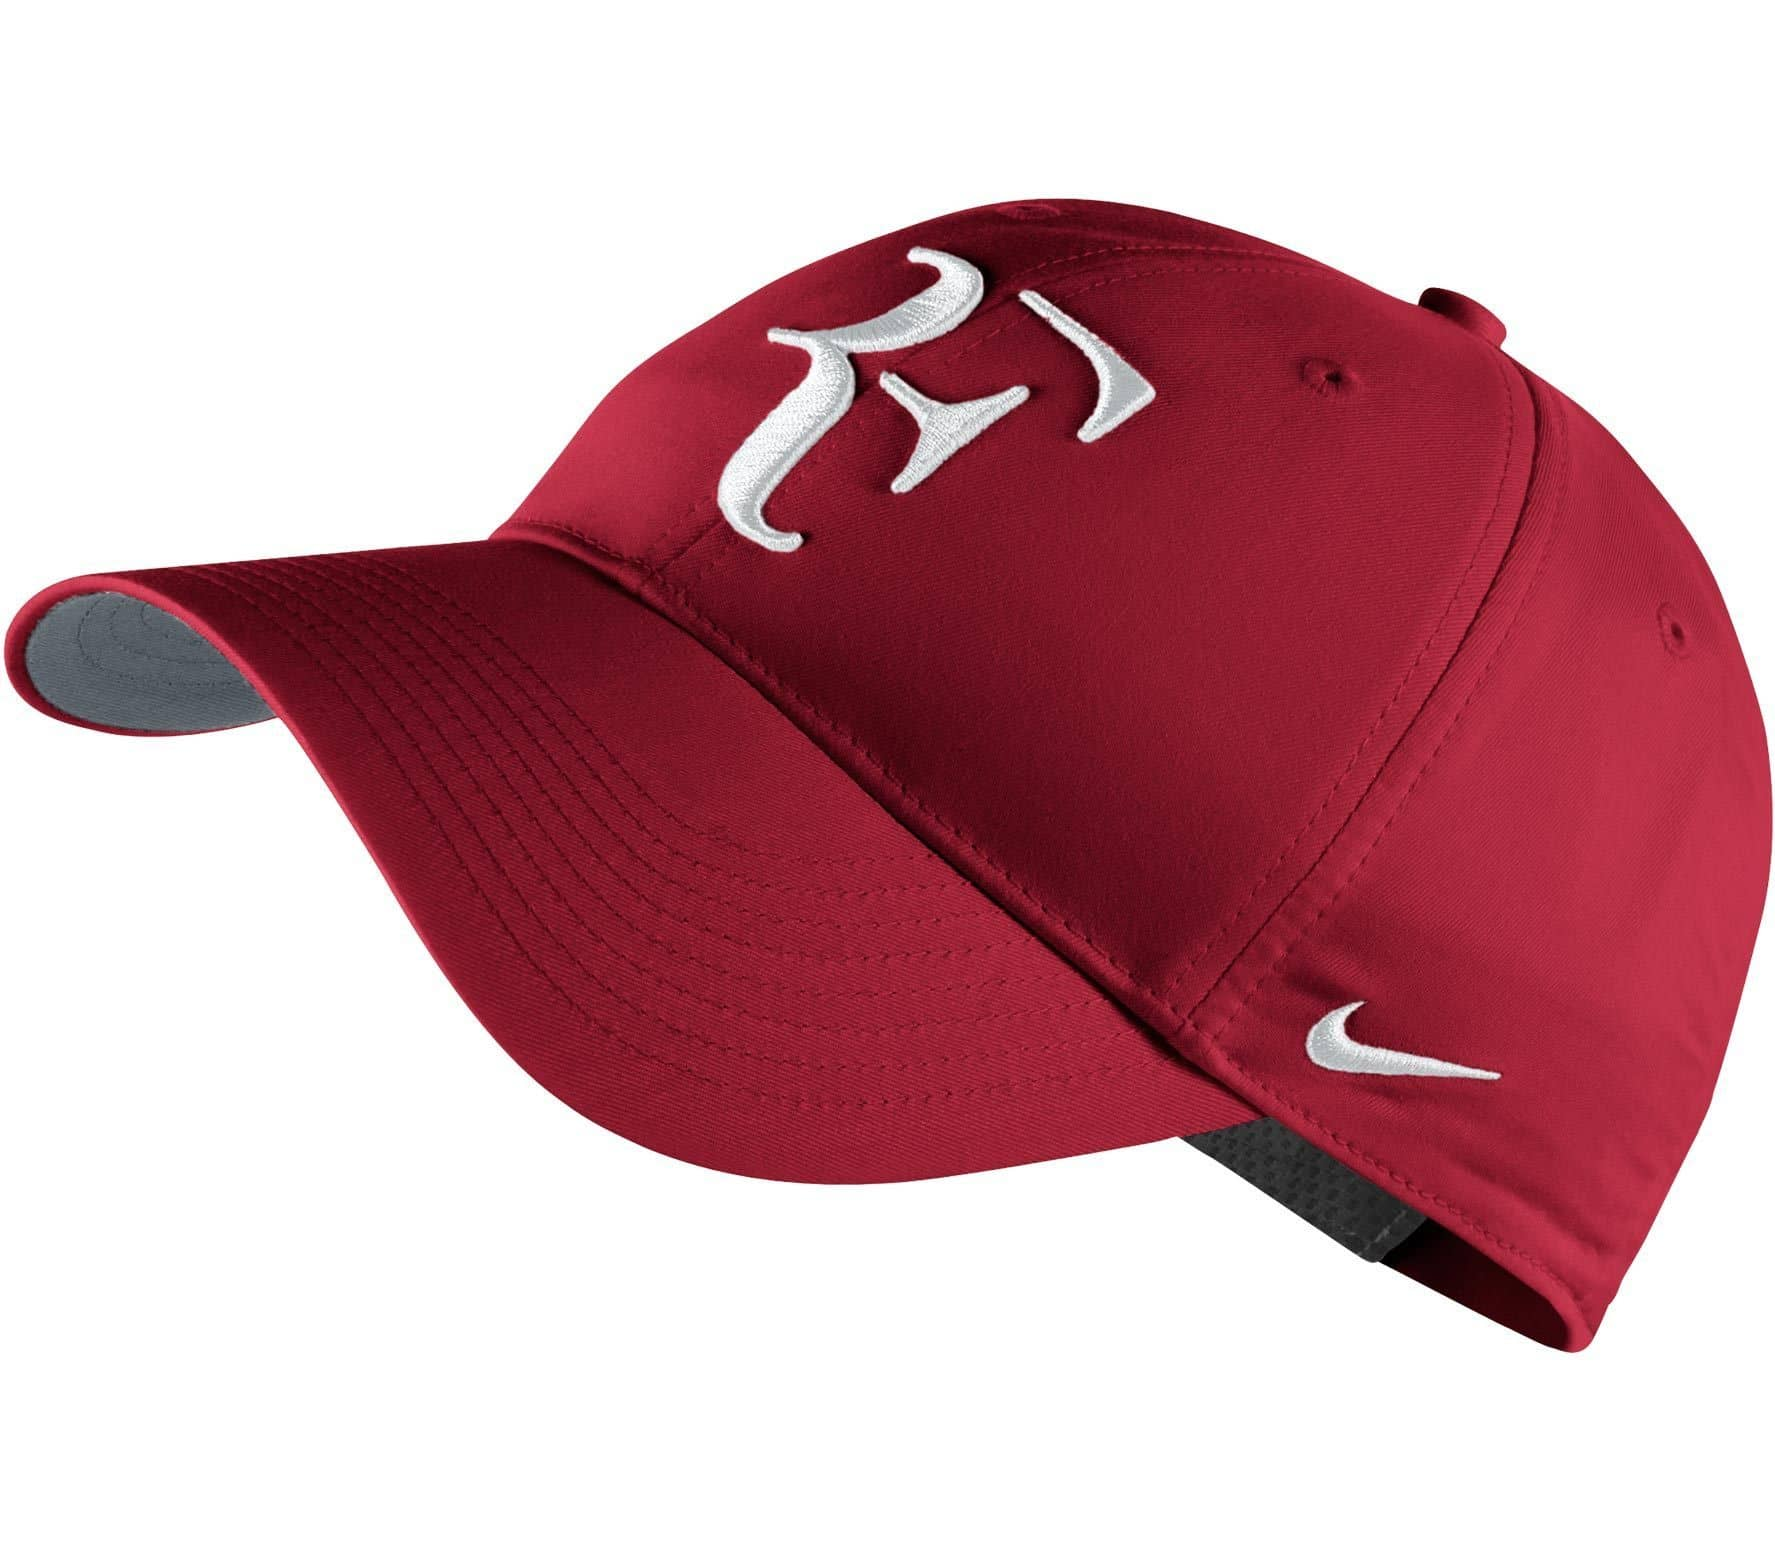 Nike - Roger Federer Hybrid cap (red) - buy it at the Keller Sports ... ce264b78f4c